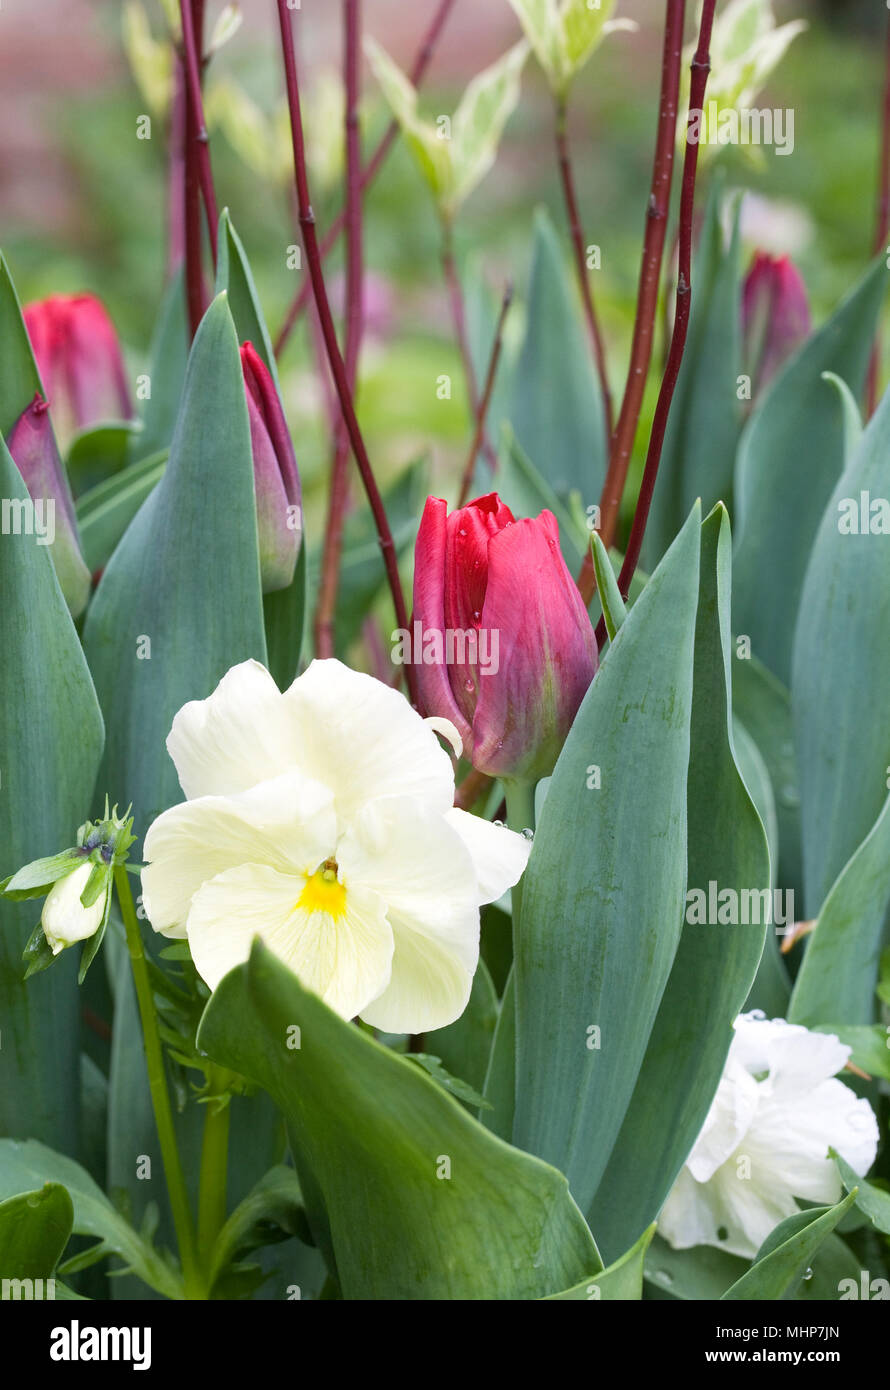 Tulips, cornus and winter pansies in a pot. - Stock Image